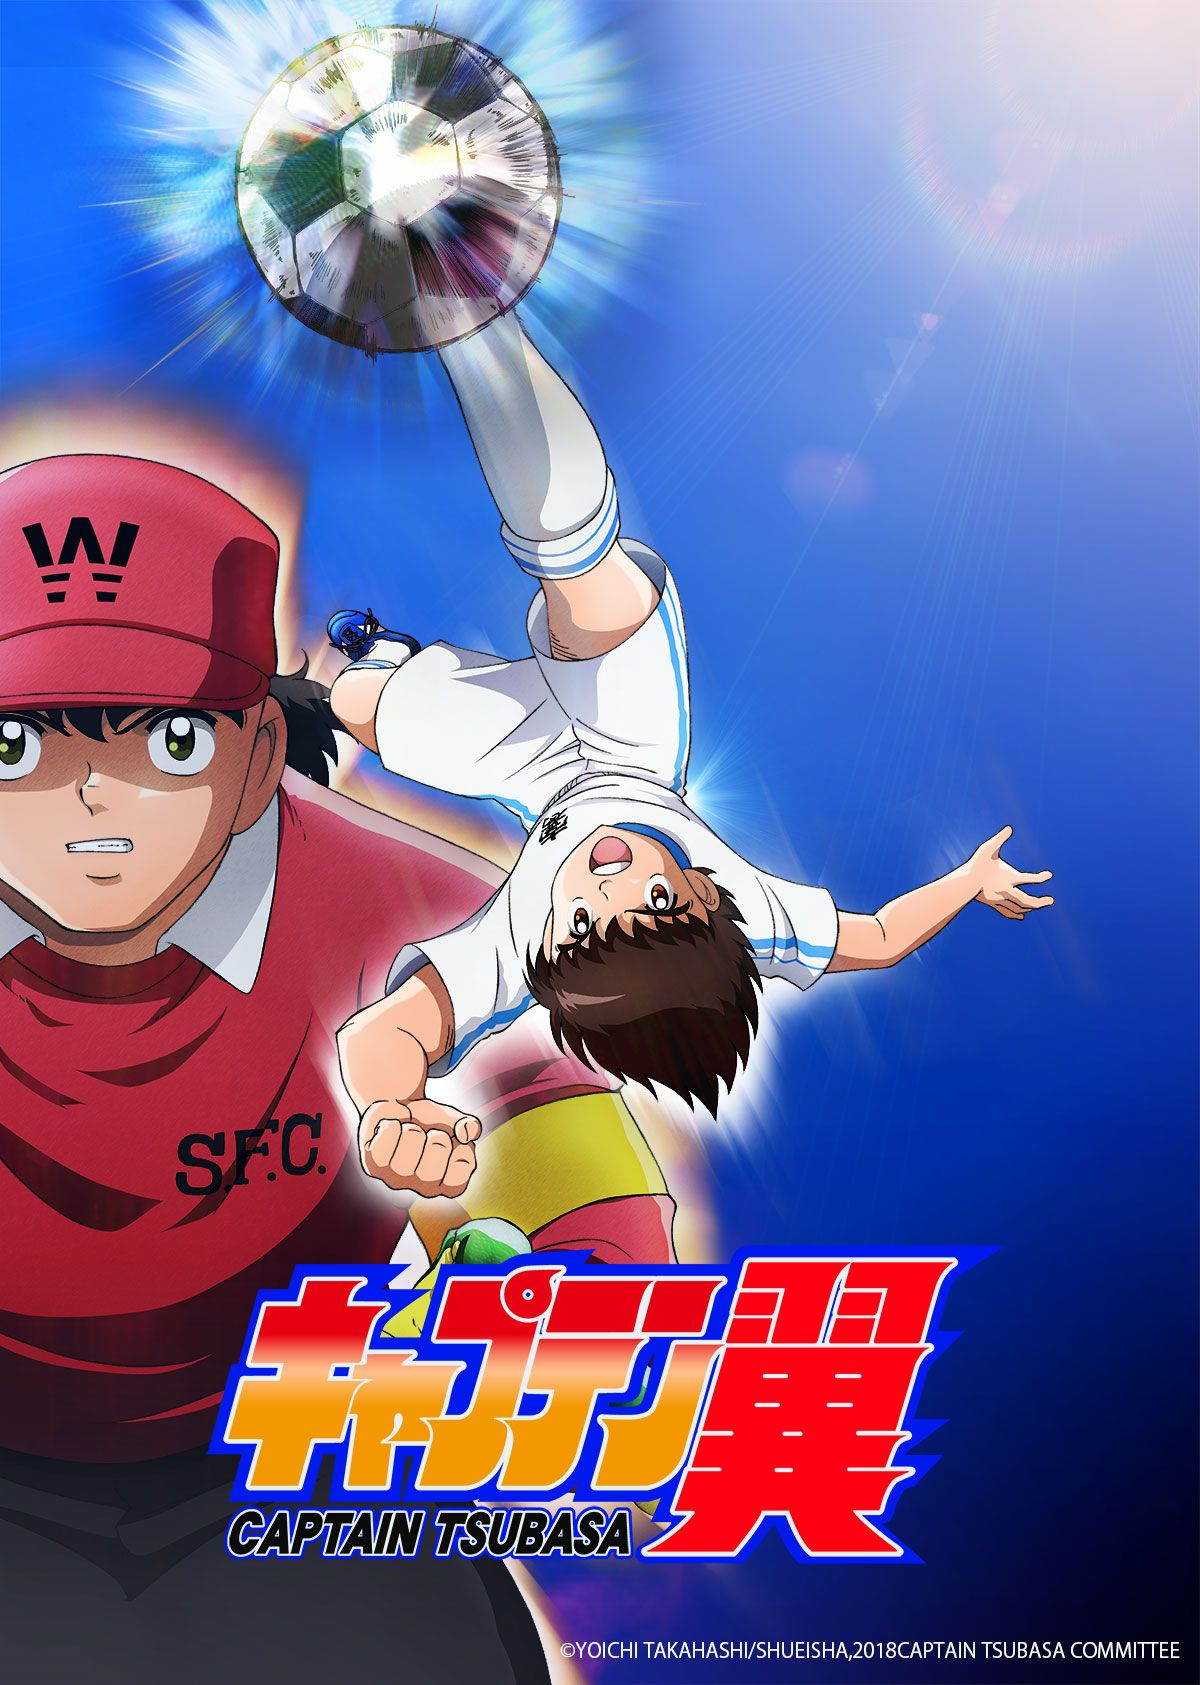 VIZ Media Acquires Sports Anime Series CAPTAIN TSUBABSA